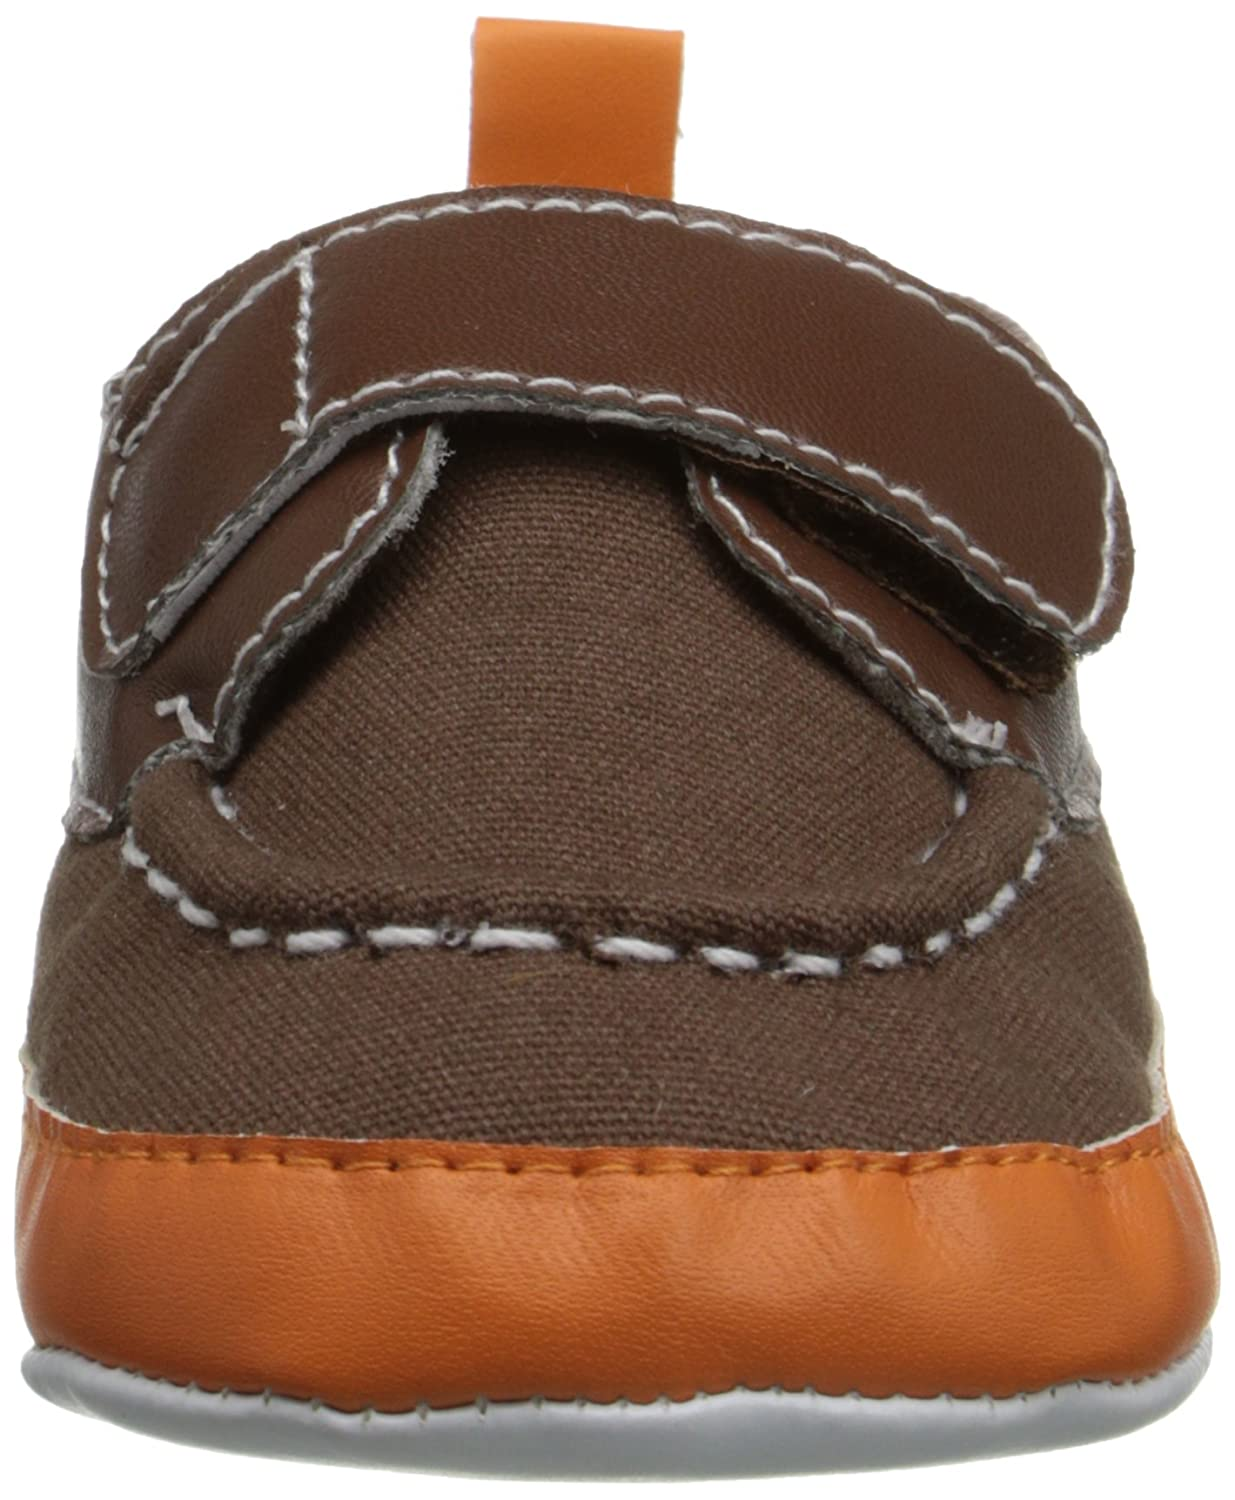 Luvable Friends Bright Boys Boat Crib Shoes Boat Shoes